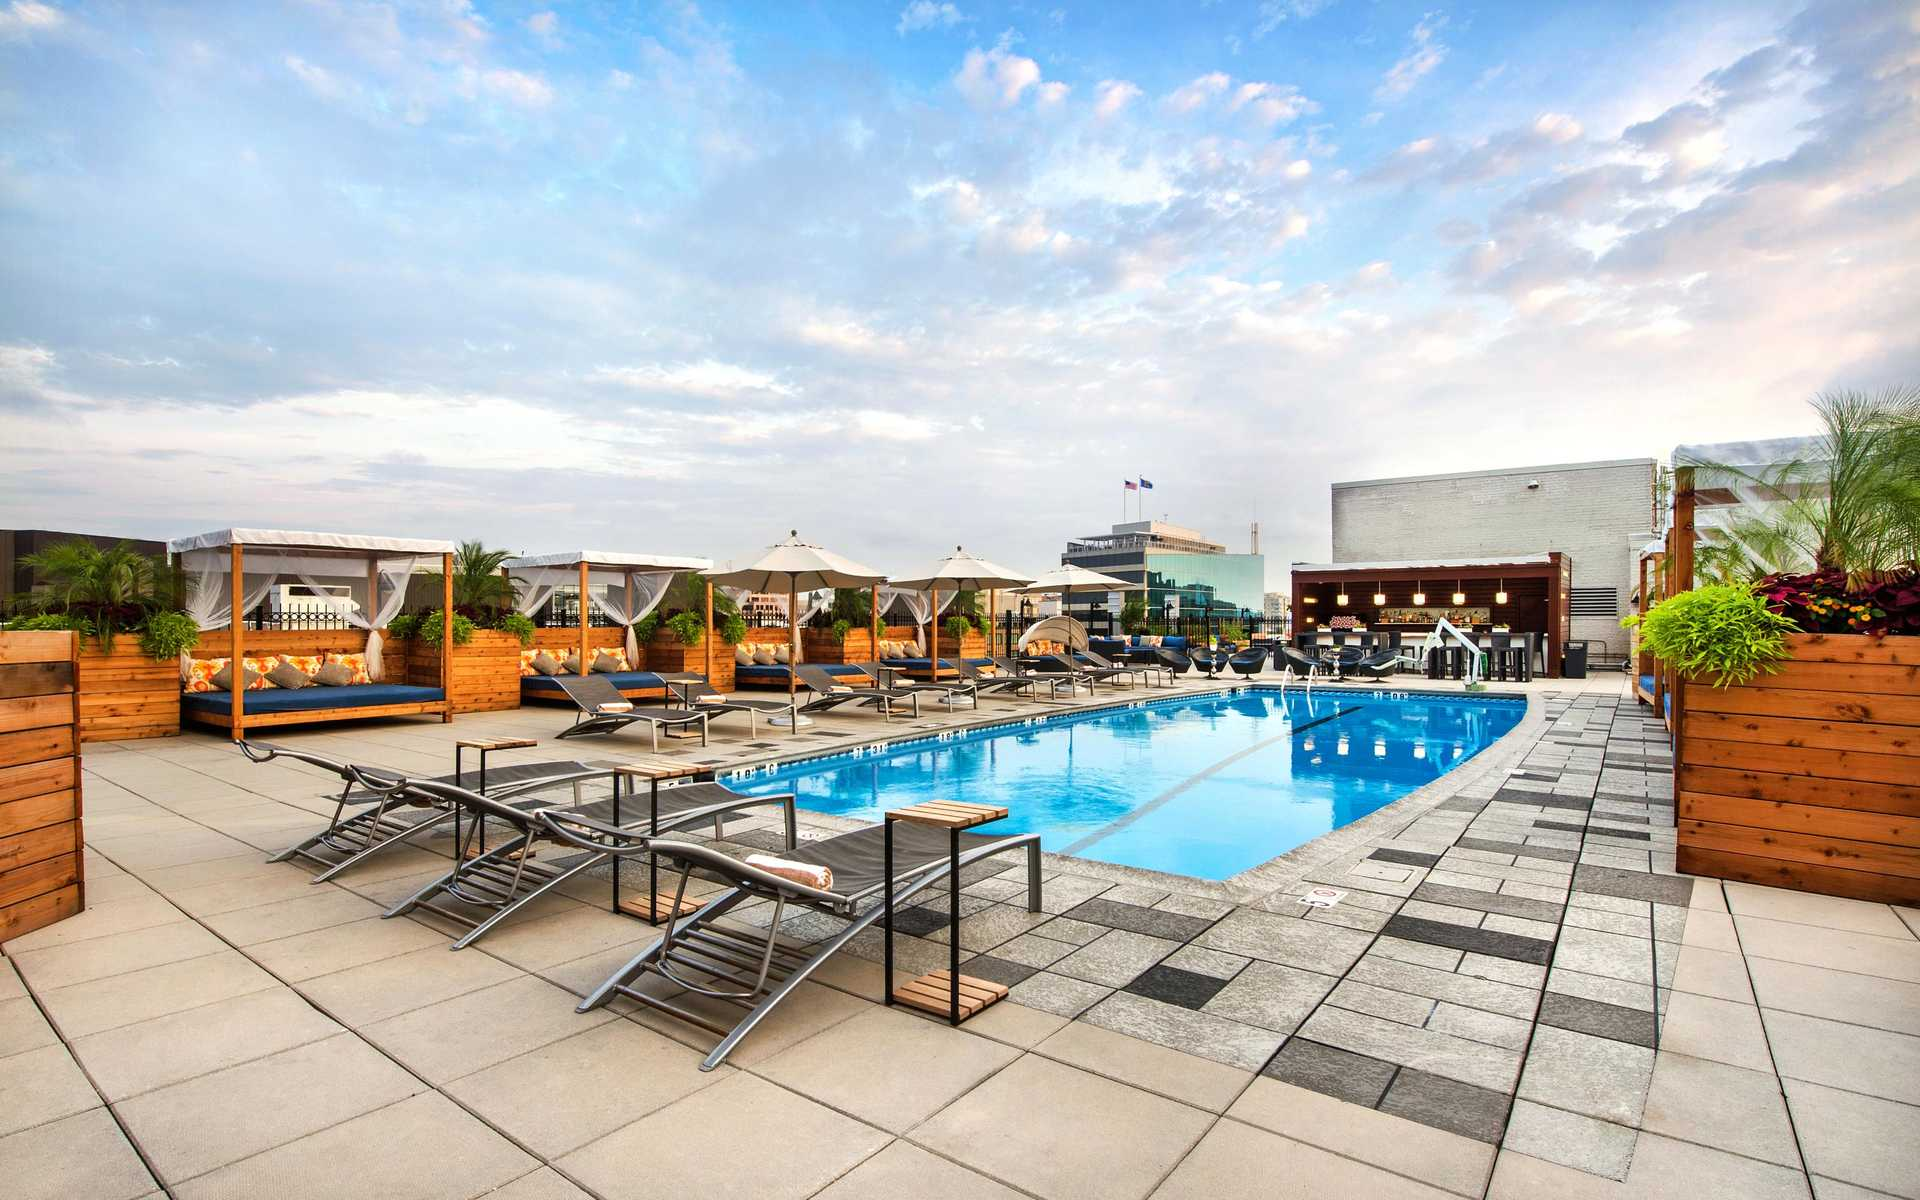 Liaison DC Rooftop Pool